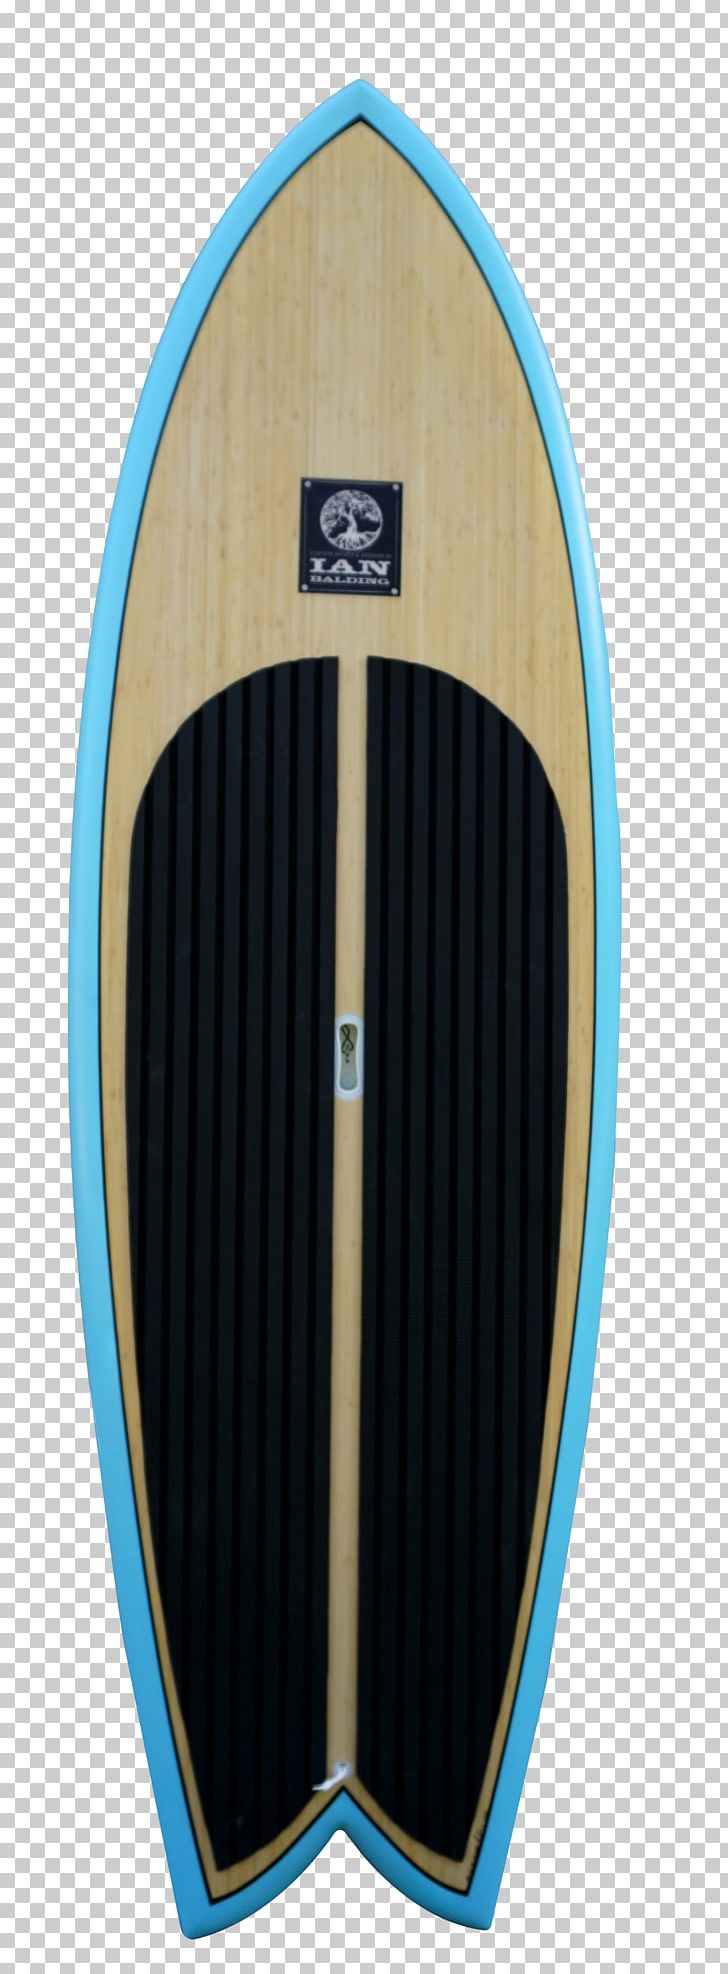 Muscle Shoals Standup Paddleboarding Surfboard Surfing PNG, Clipart, Electric Blue, Fat Tuna Grill Oyster House, Garden Gun, Ian Balding Paddle Surf, Muscle Shoals Free PNG Download